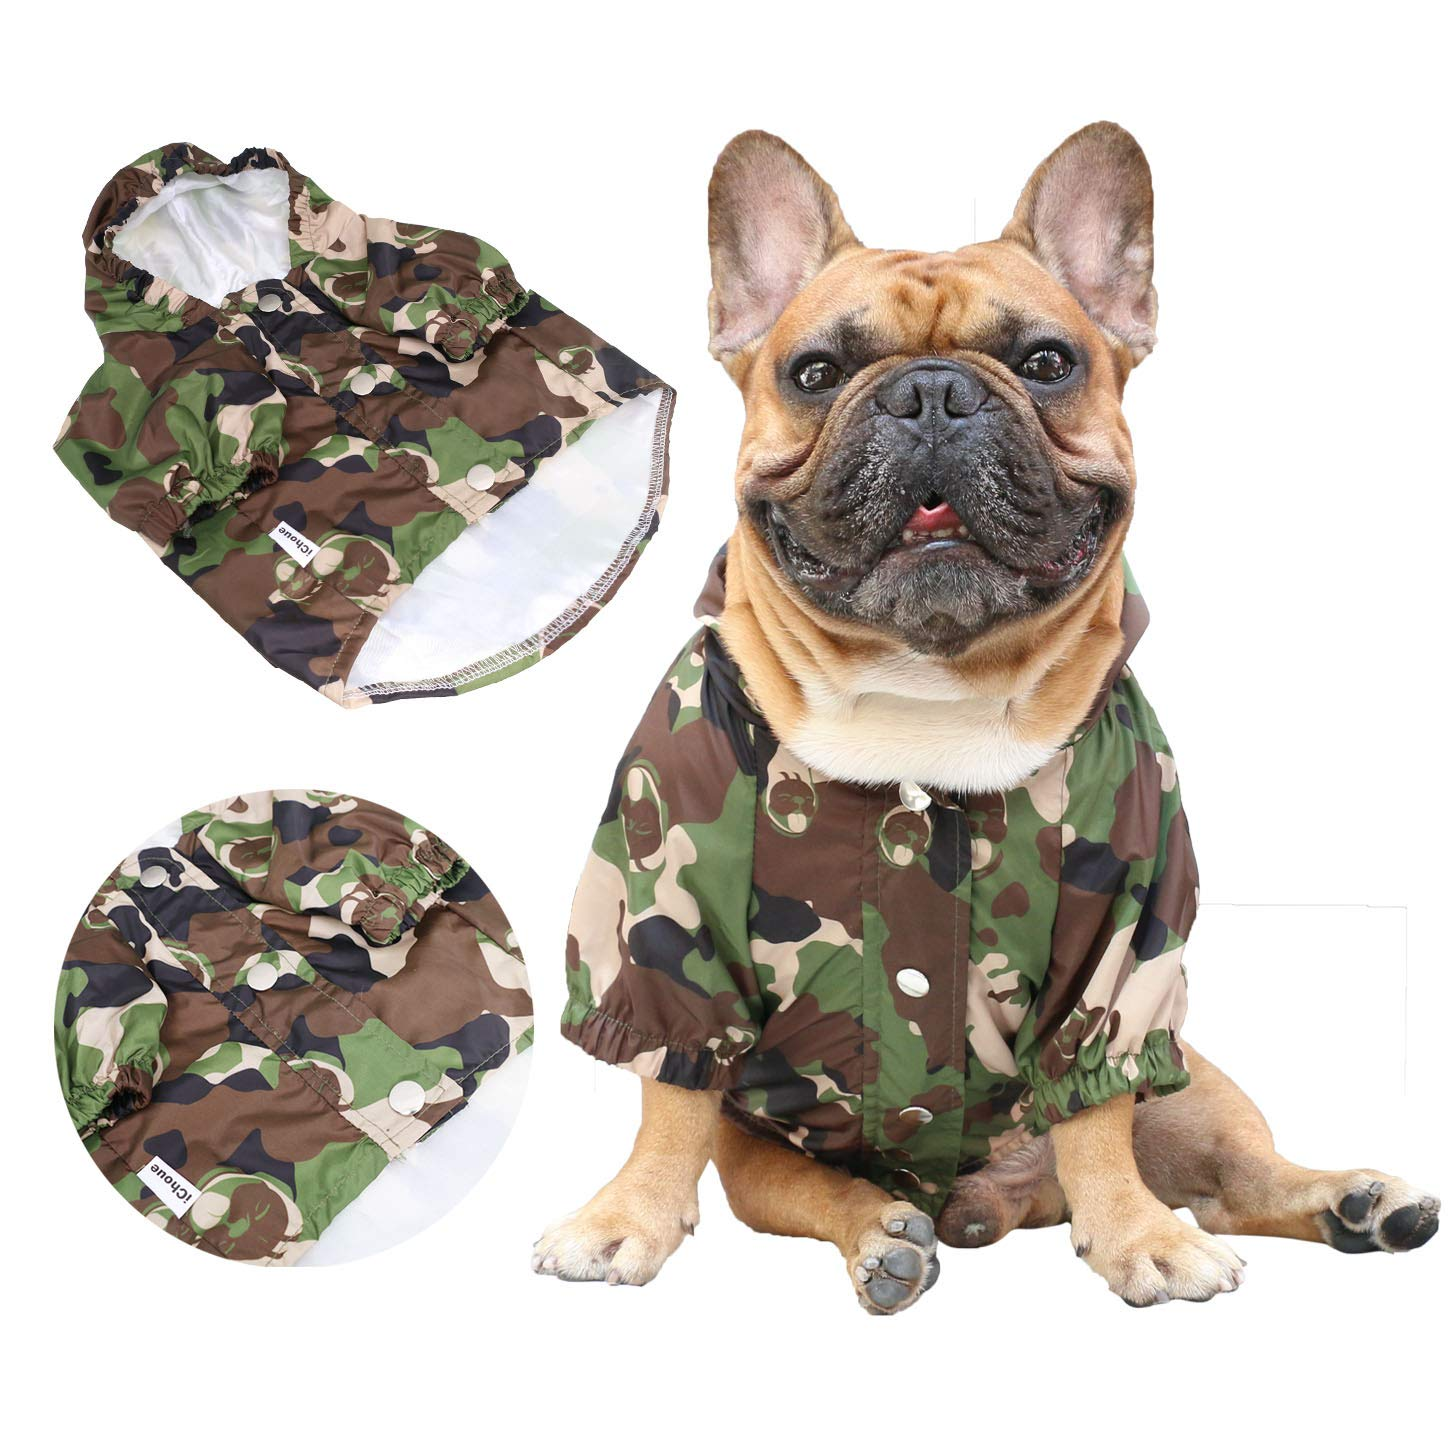 iChoue Pet Dog Hoodie Clothes Windproof Waterproof Raincoat for French bullodg Outwear Shiba Inu Frenchie Outdoor Water Resistant Coat with Reflective Strips - Camouflage/Size M